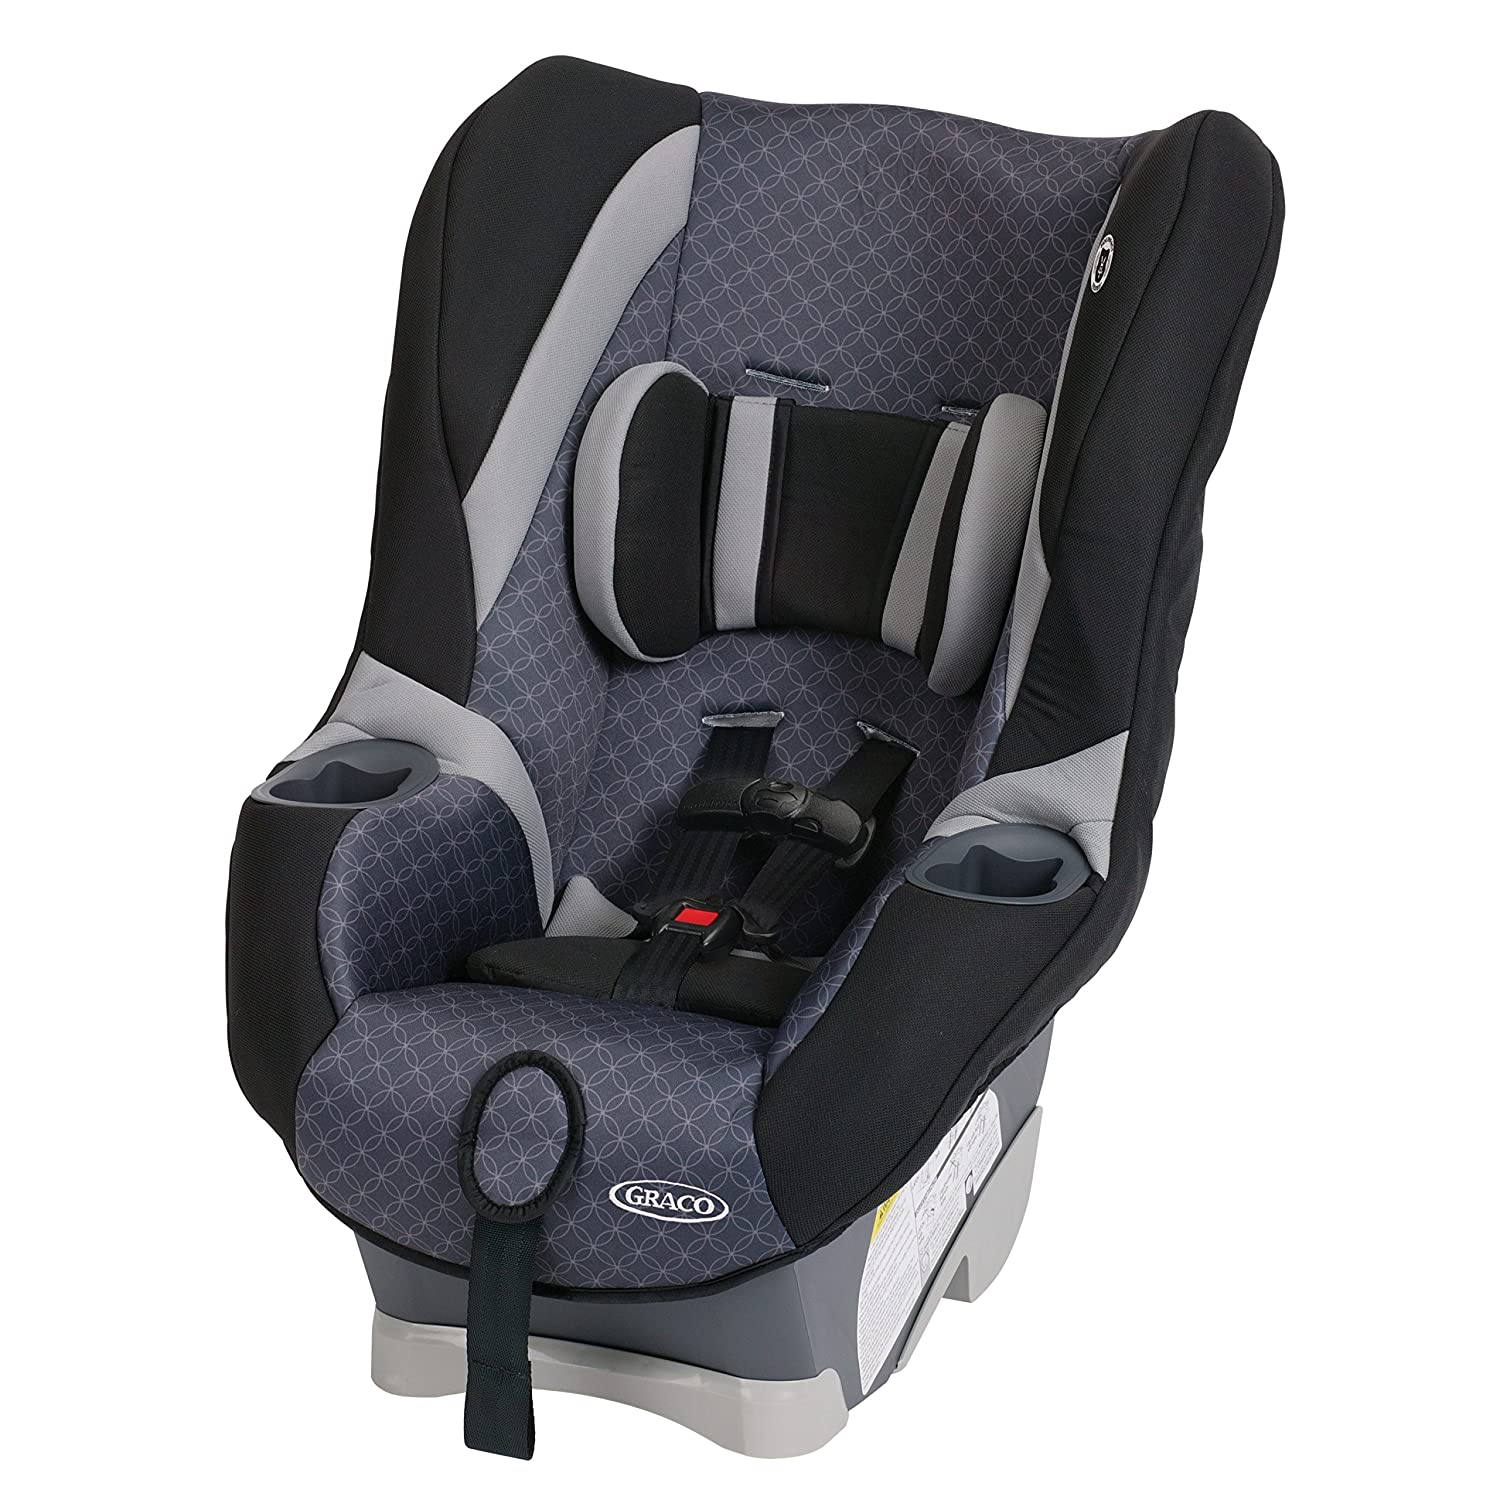 Graco-Ride-Convertible-Seat-Coda-2020